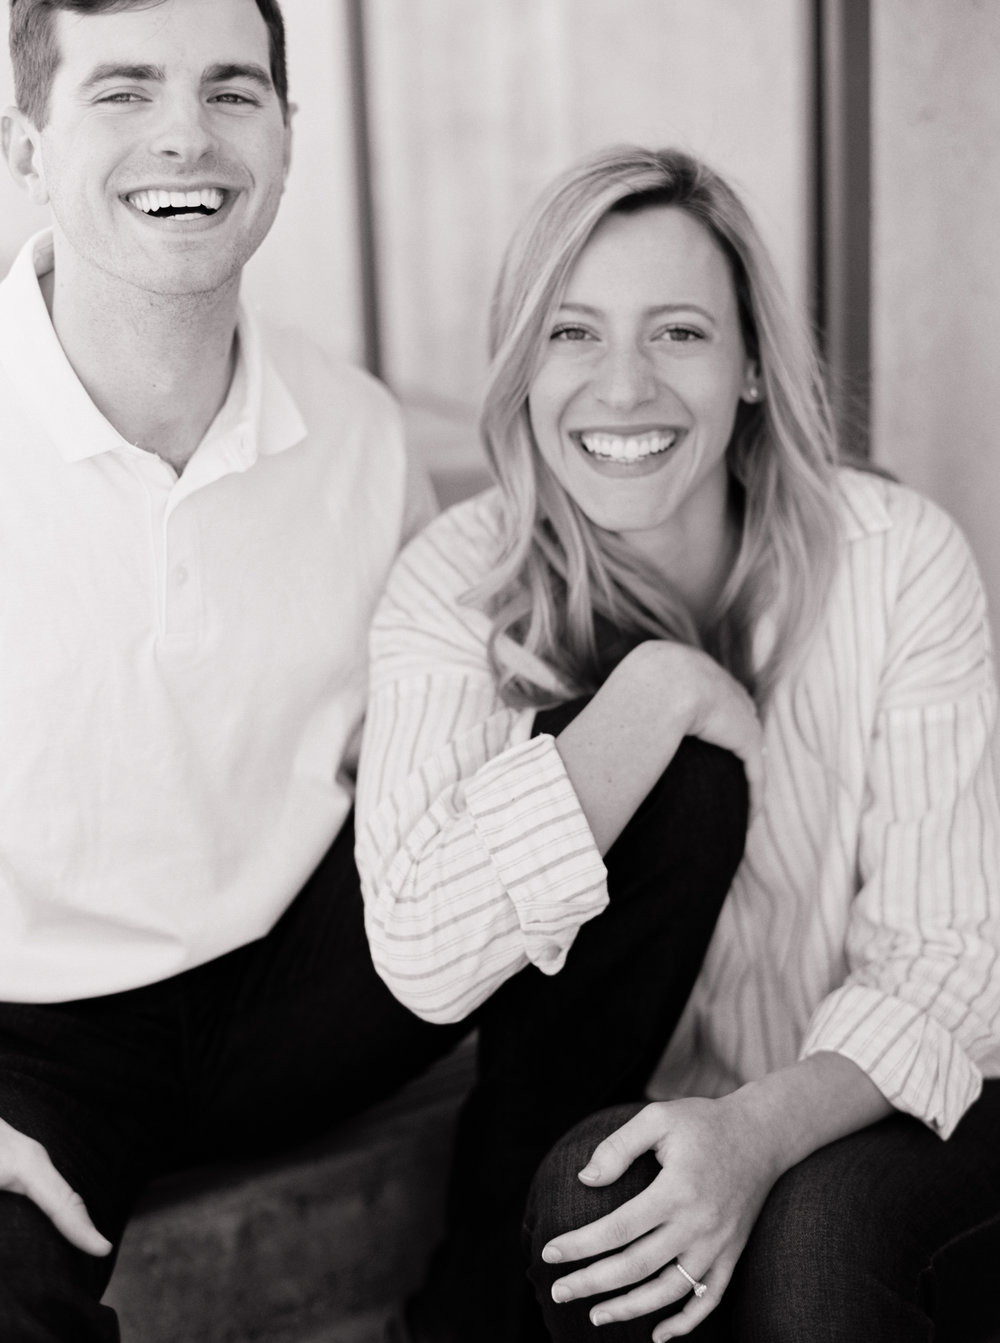 Engagement Photo Outfits-4.jpg